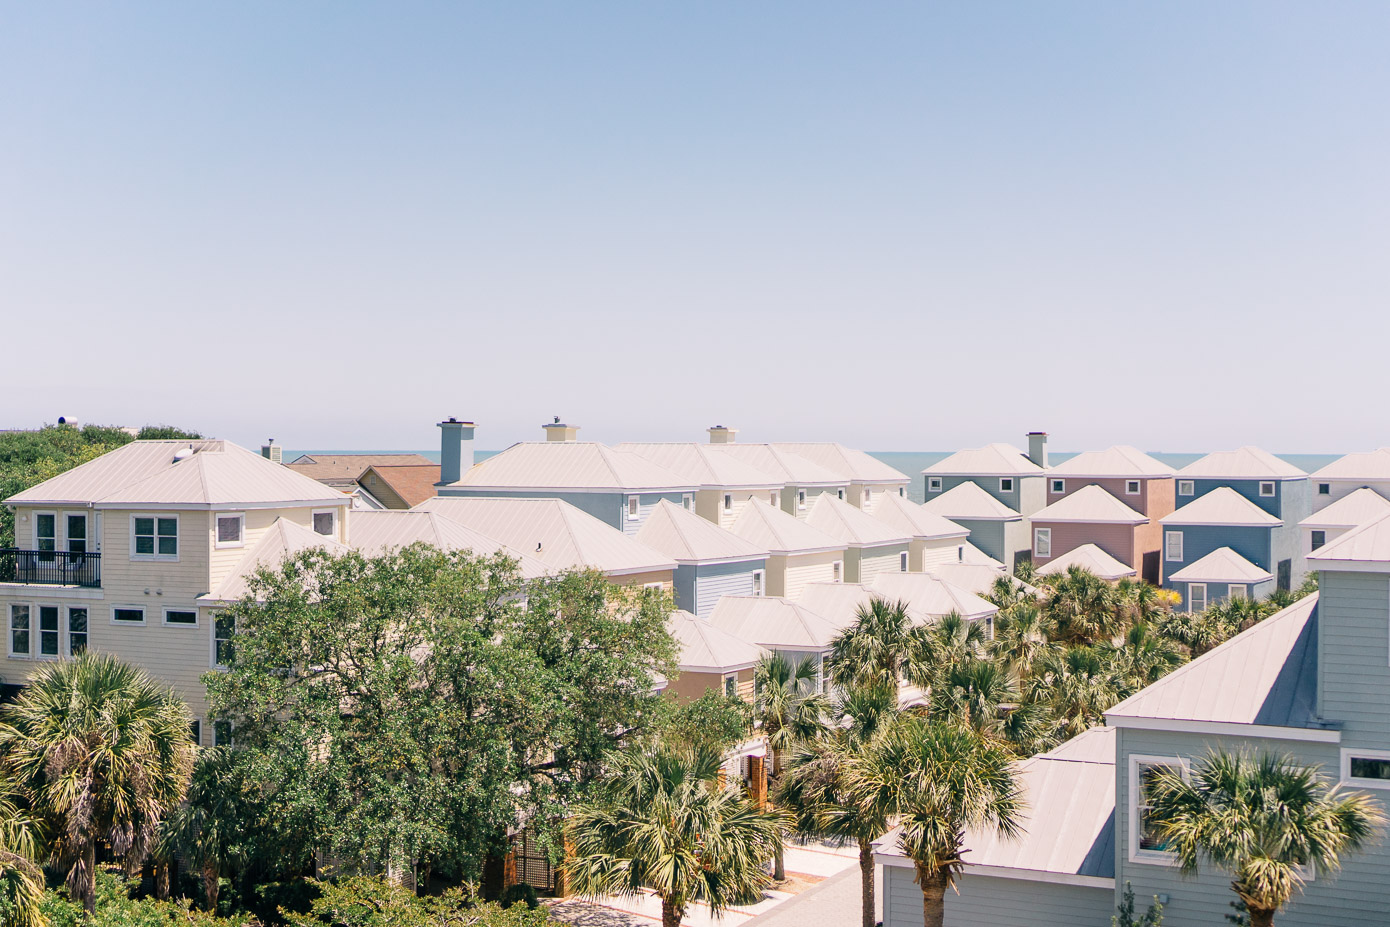 Wild Dunes Resort Review | Louella Reese Life & Style Blog